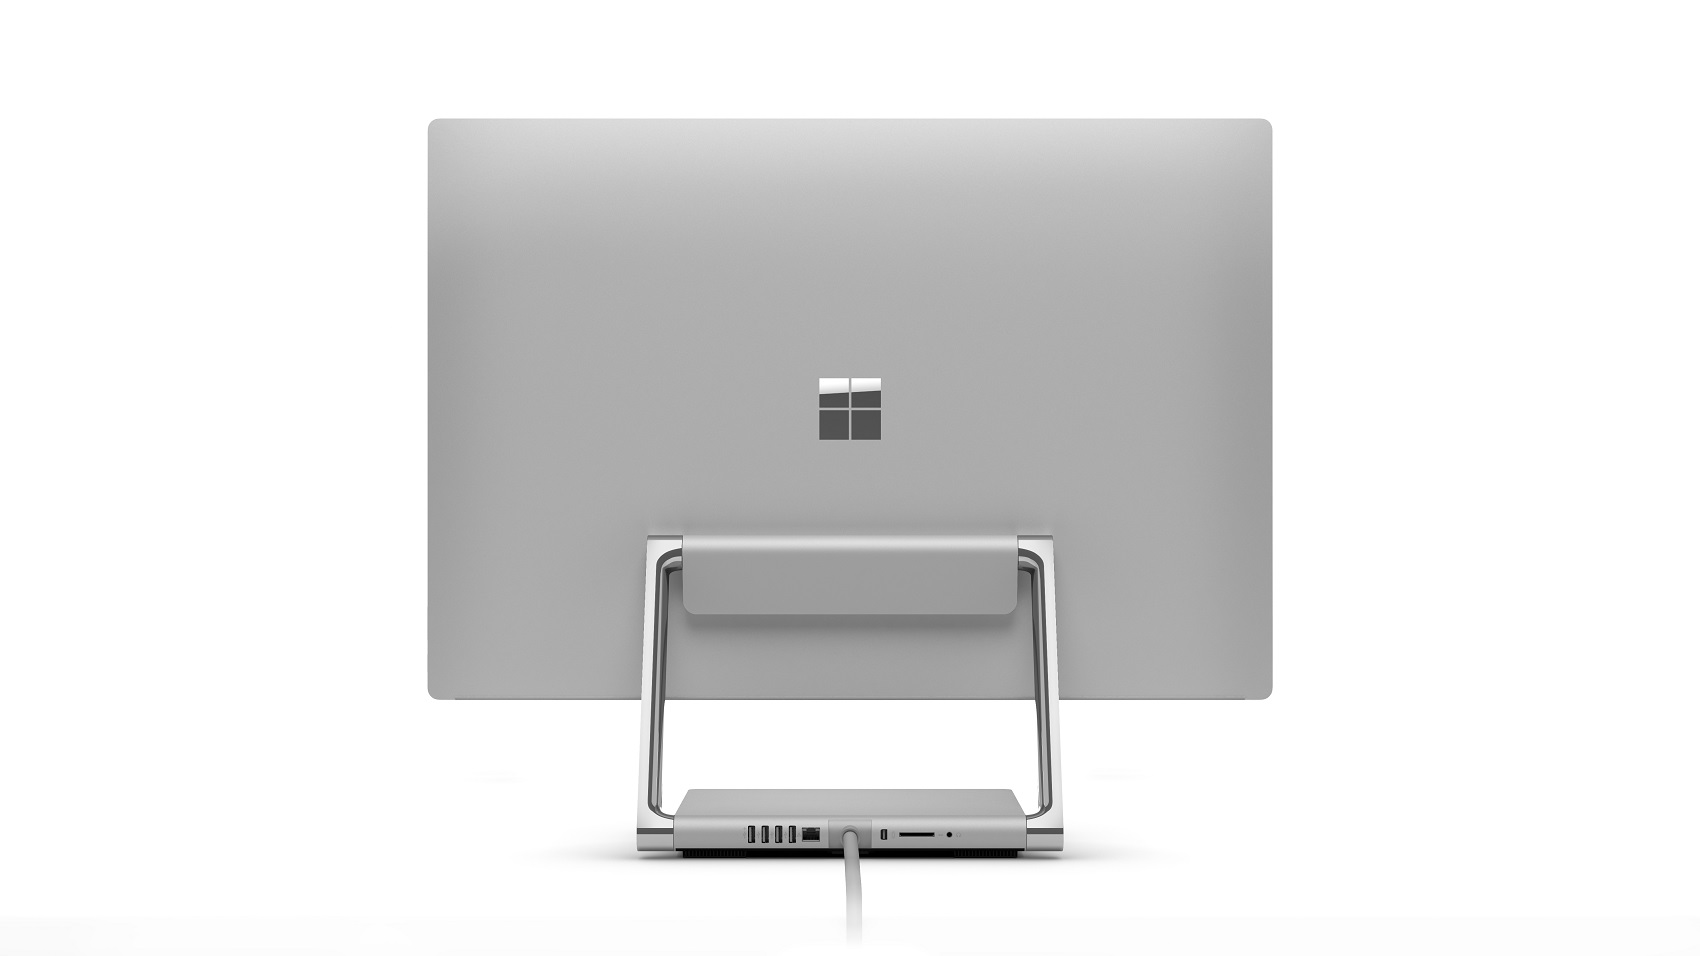 Surface Studio with Zero Gravity Hinge